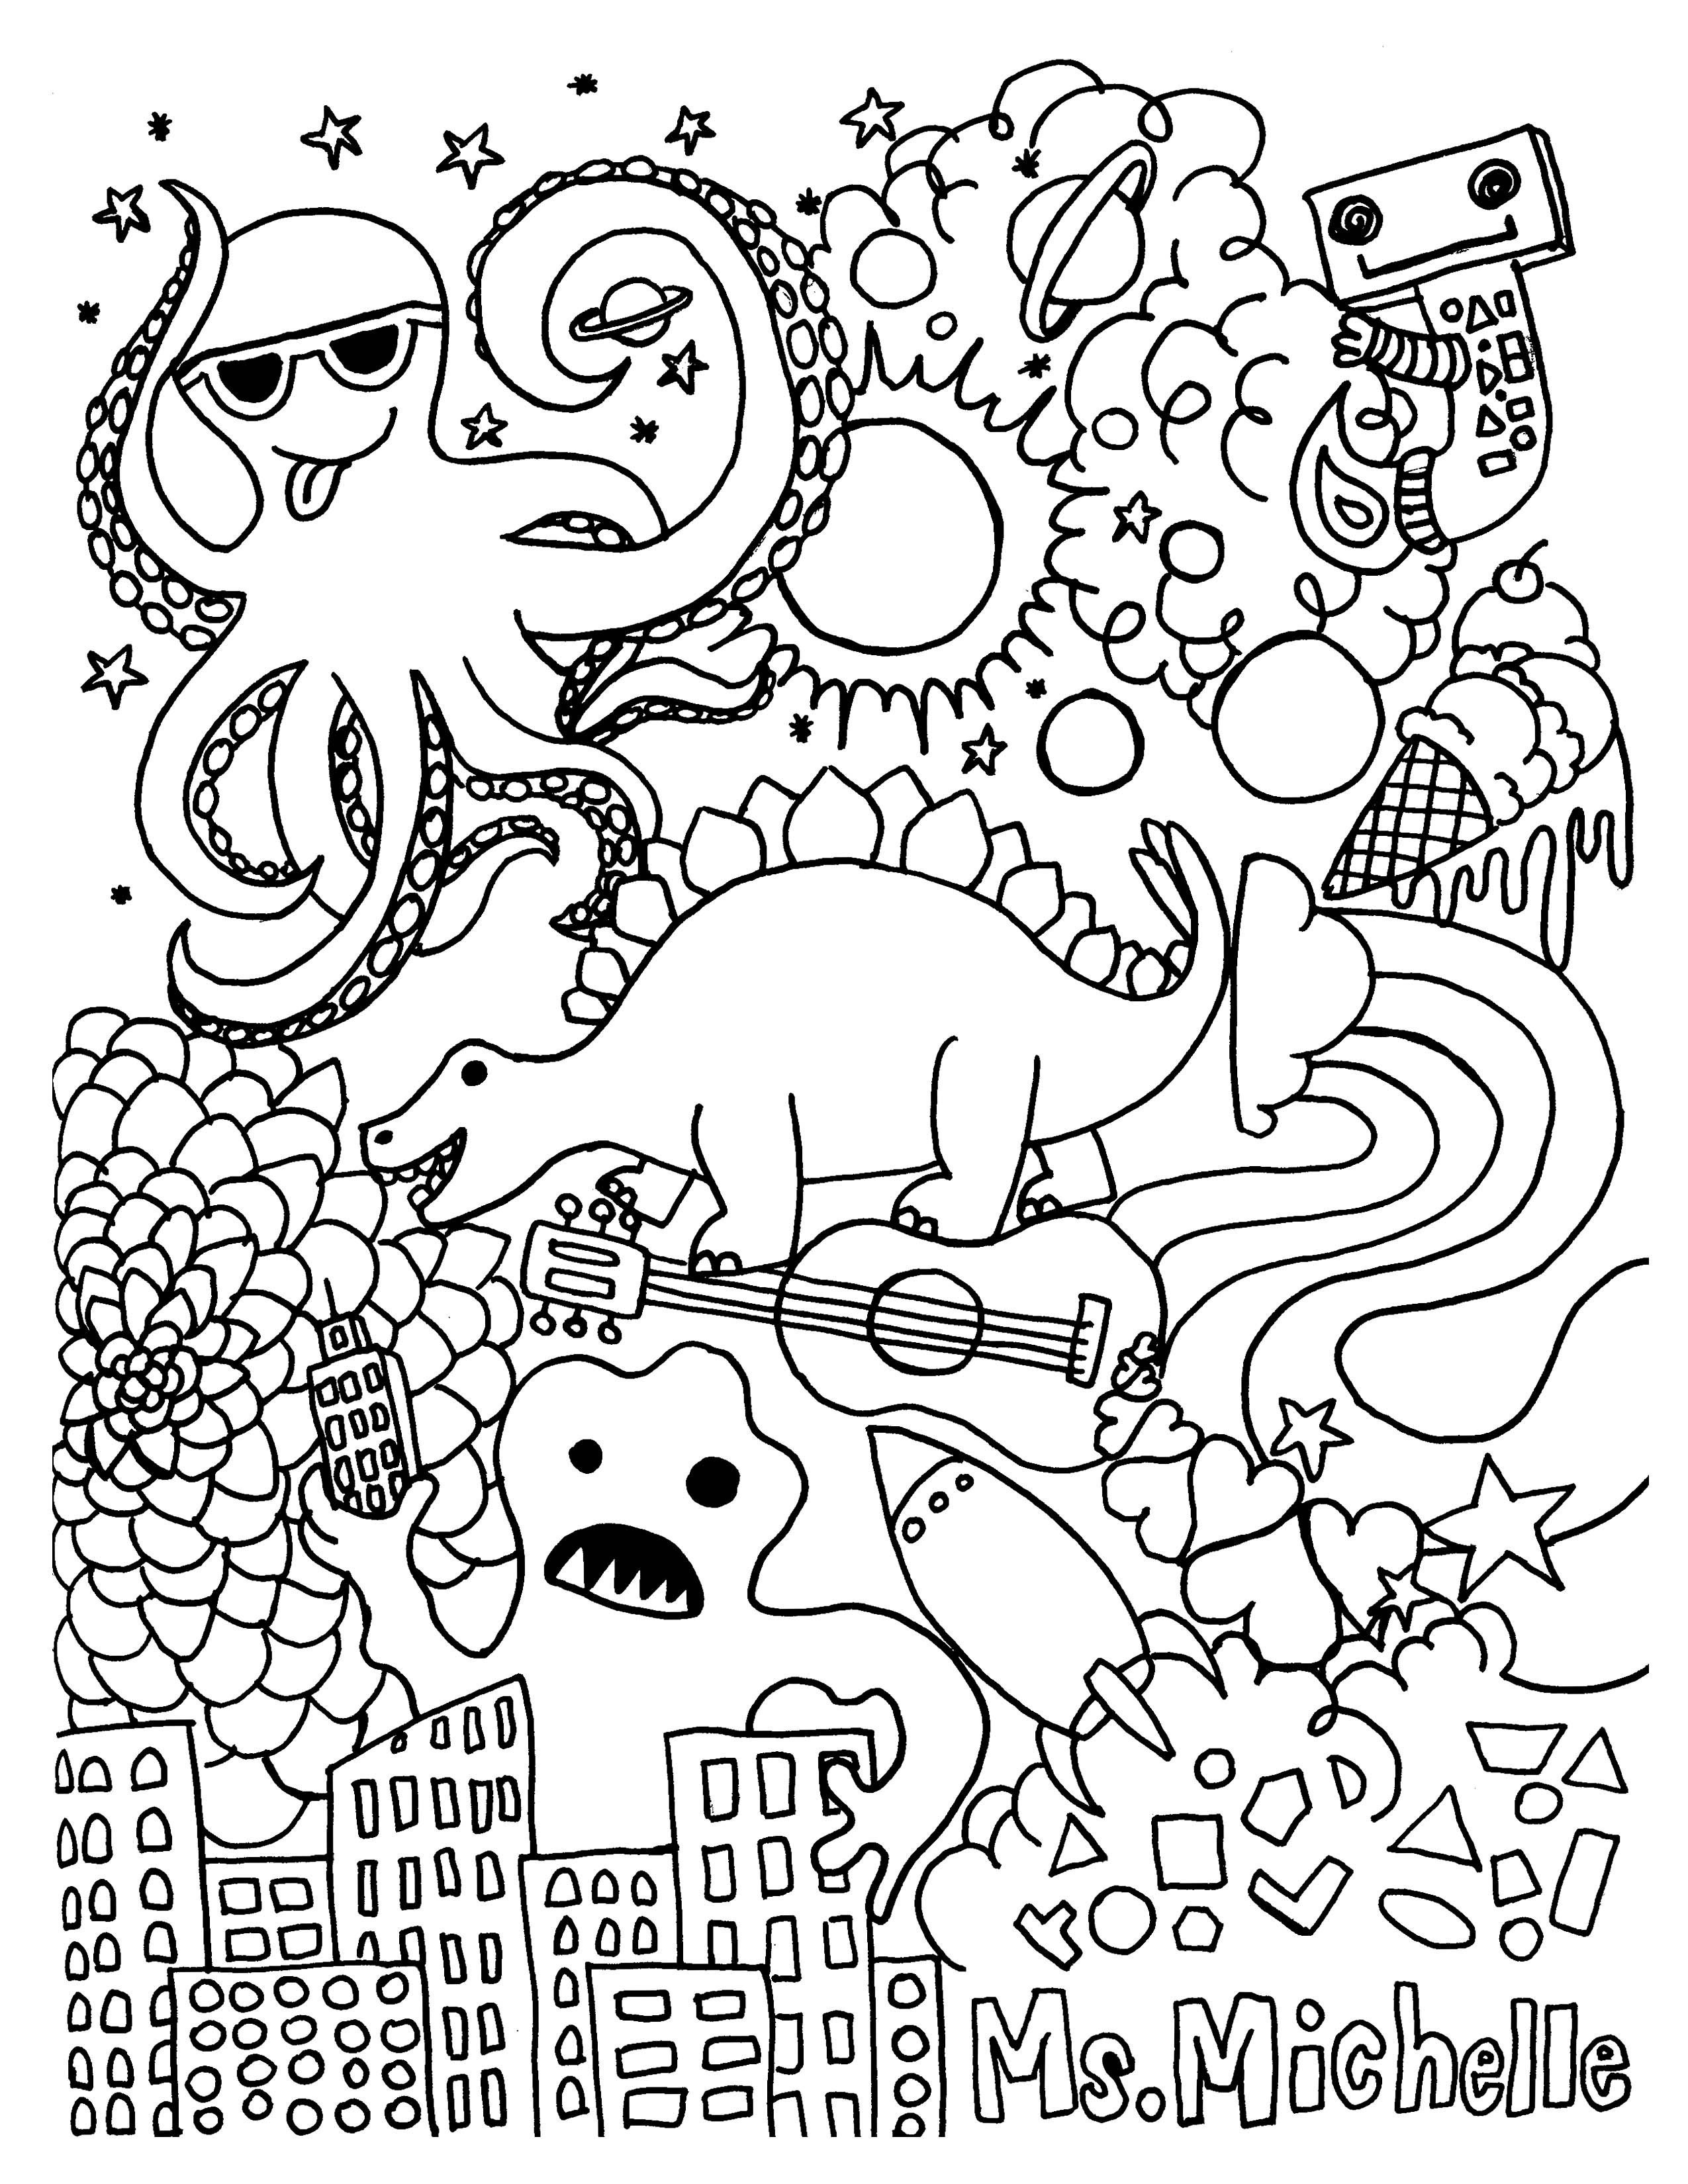 All About Me Coloring Pages  to Print 1g - To print for your project